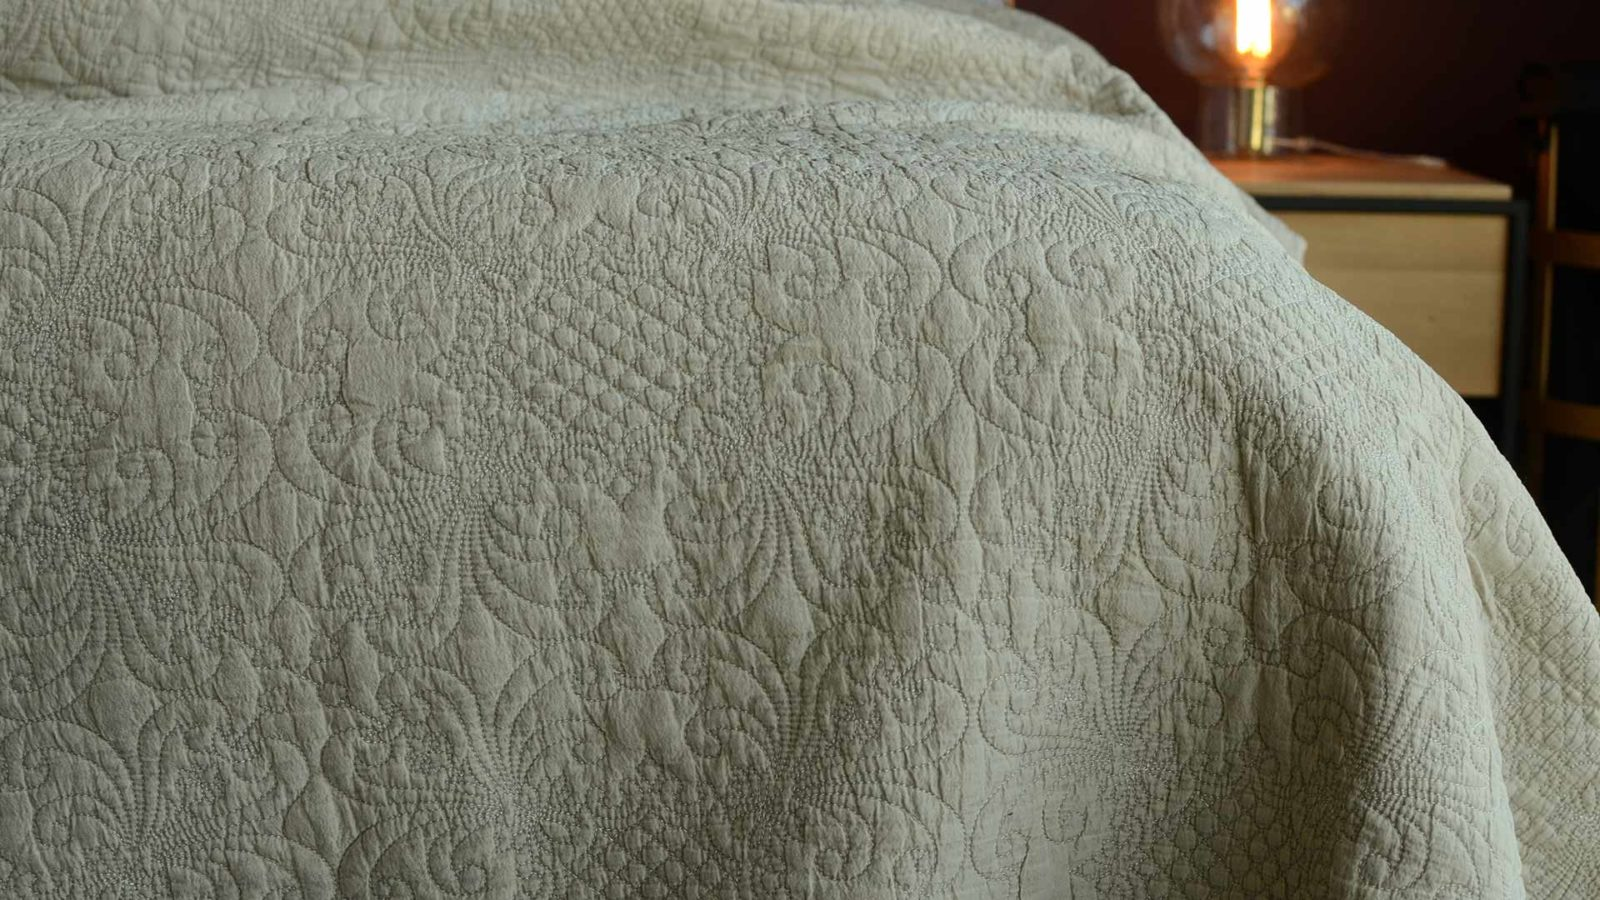 stonewash-embroidered-quilt-clay-close-up